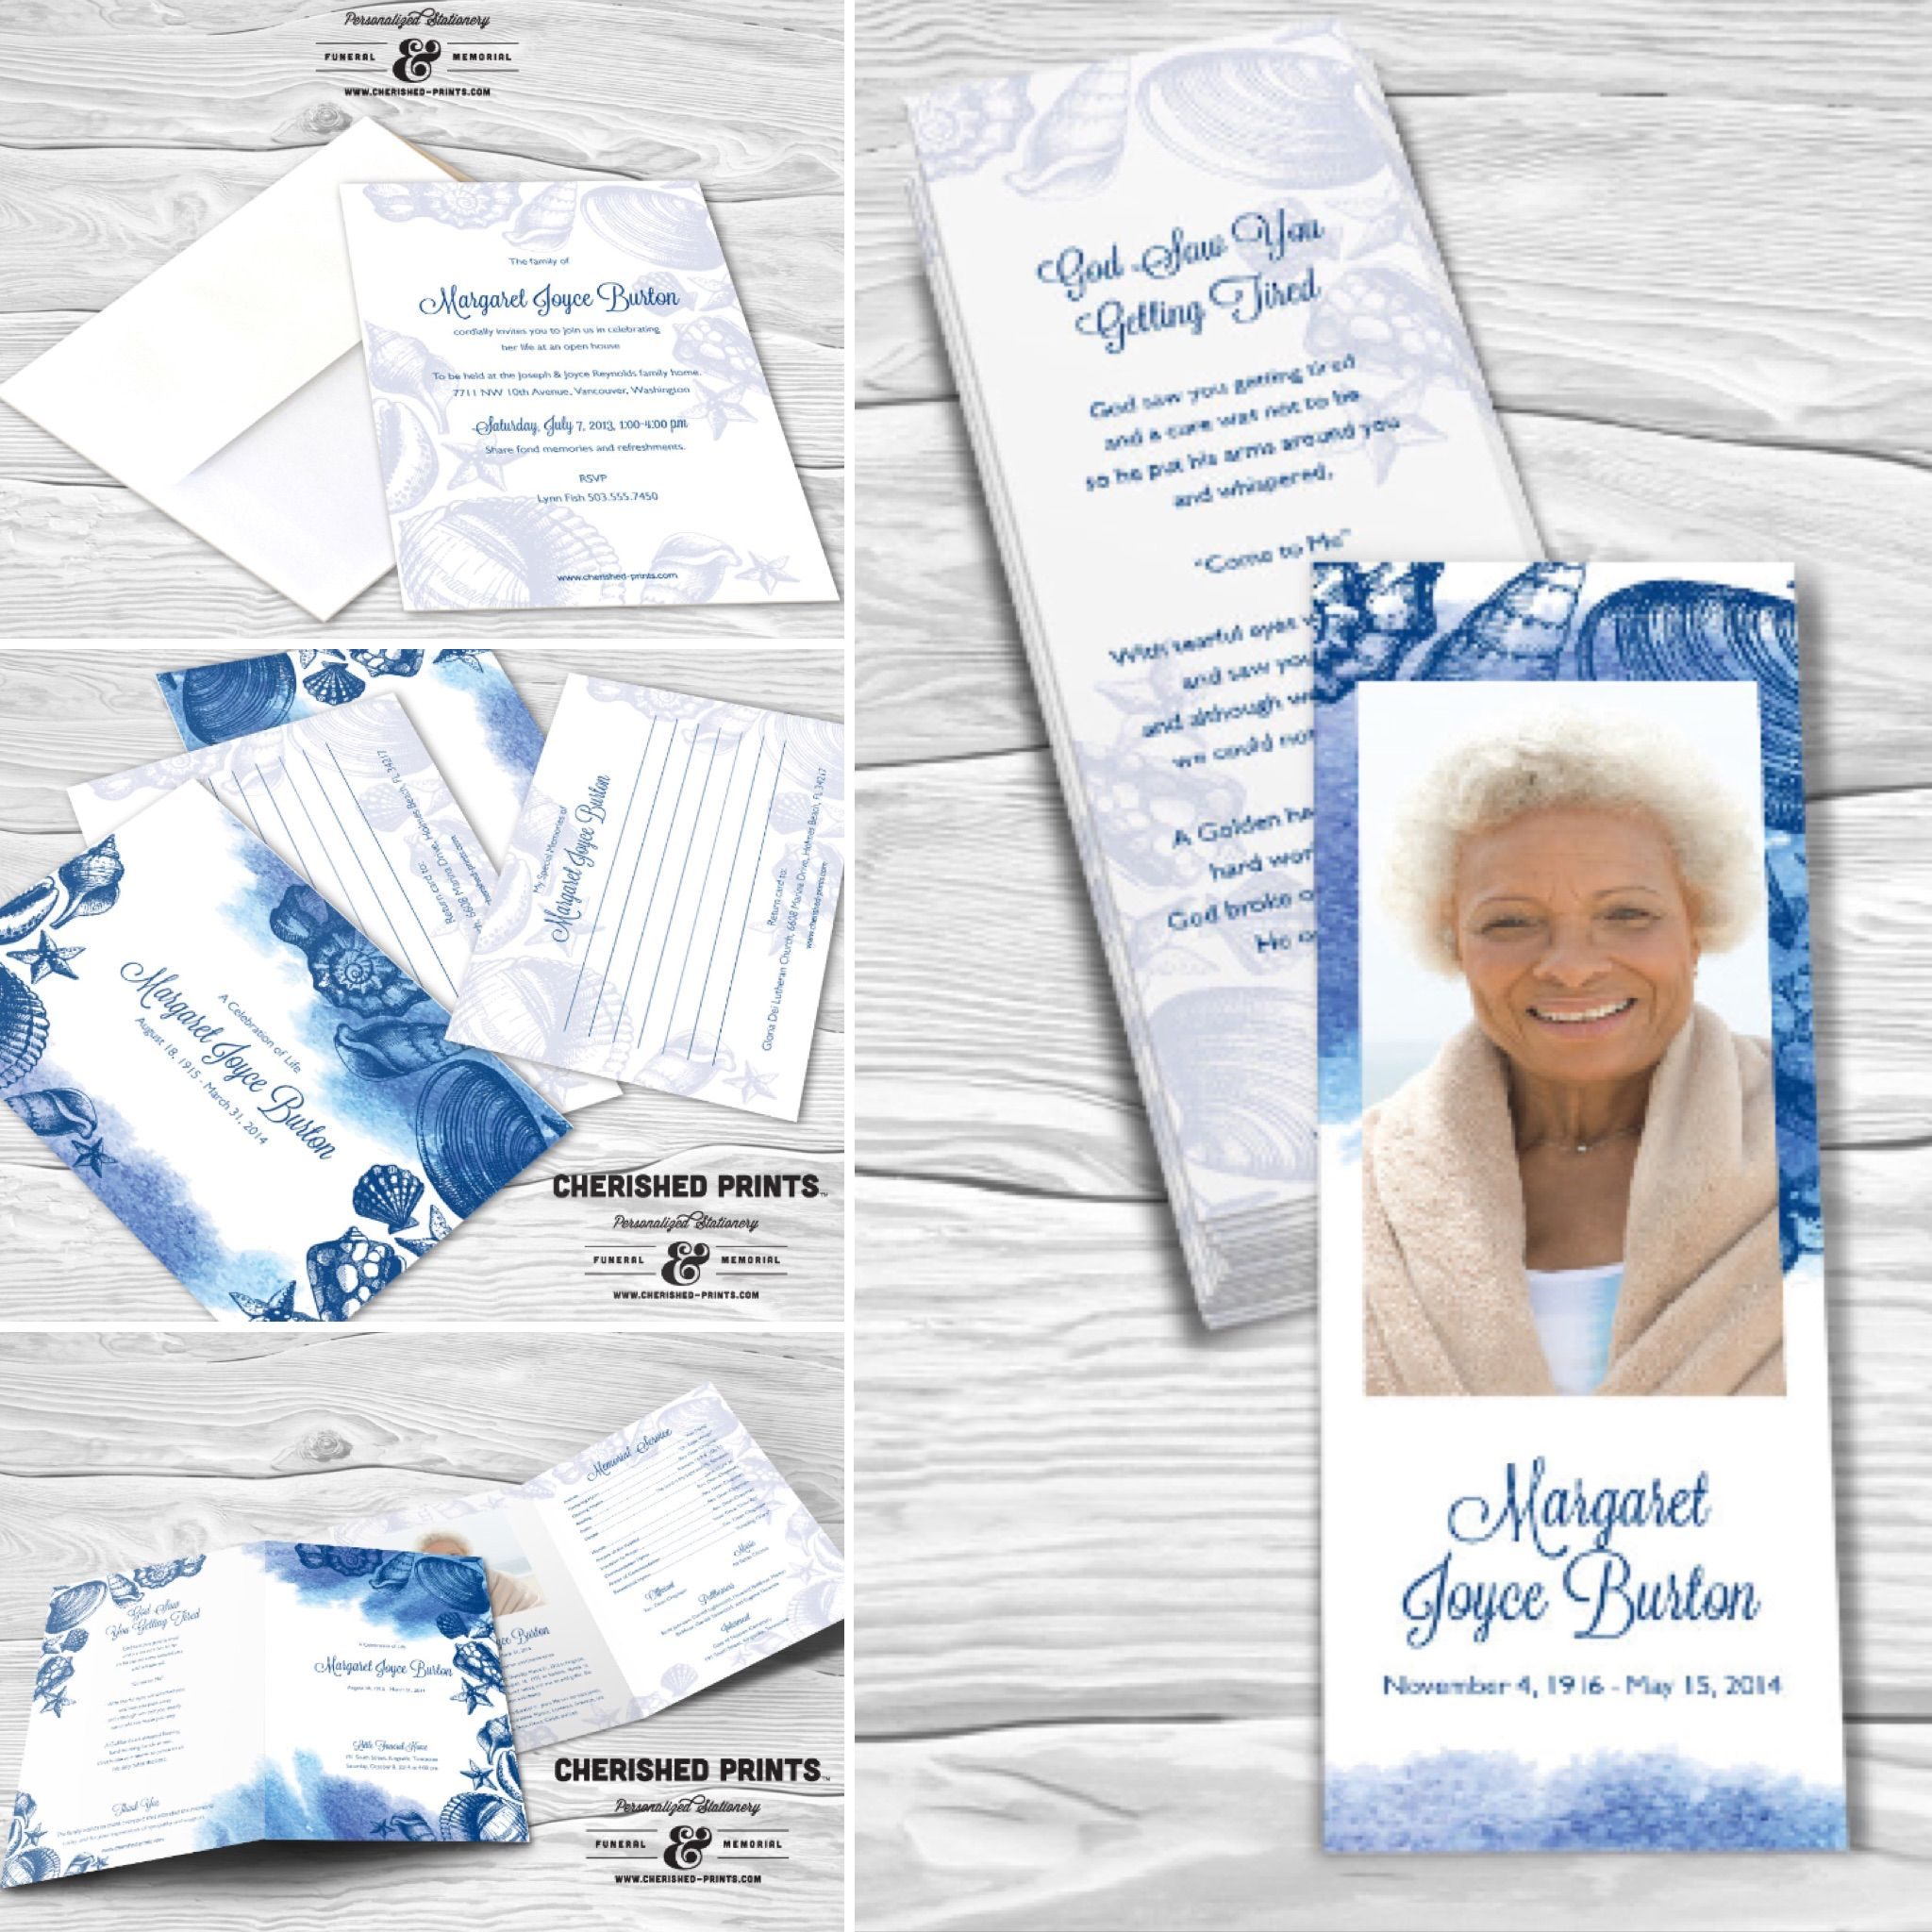 Seashells Invite Your Celebration Of Life Funeral And Memorial Attendees To Share Their Memo Memorial Service Program Memorial Announcement Guest Book Sign